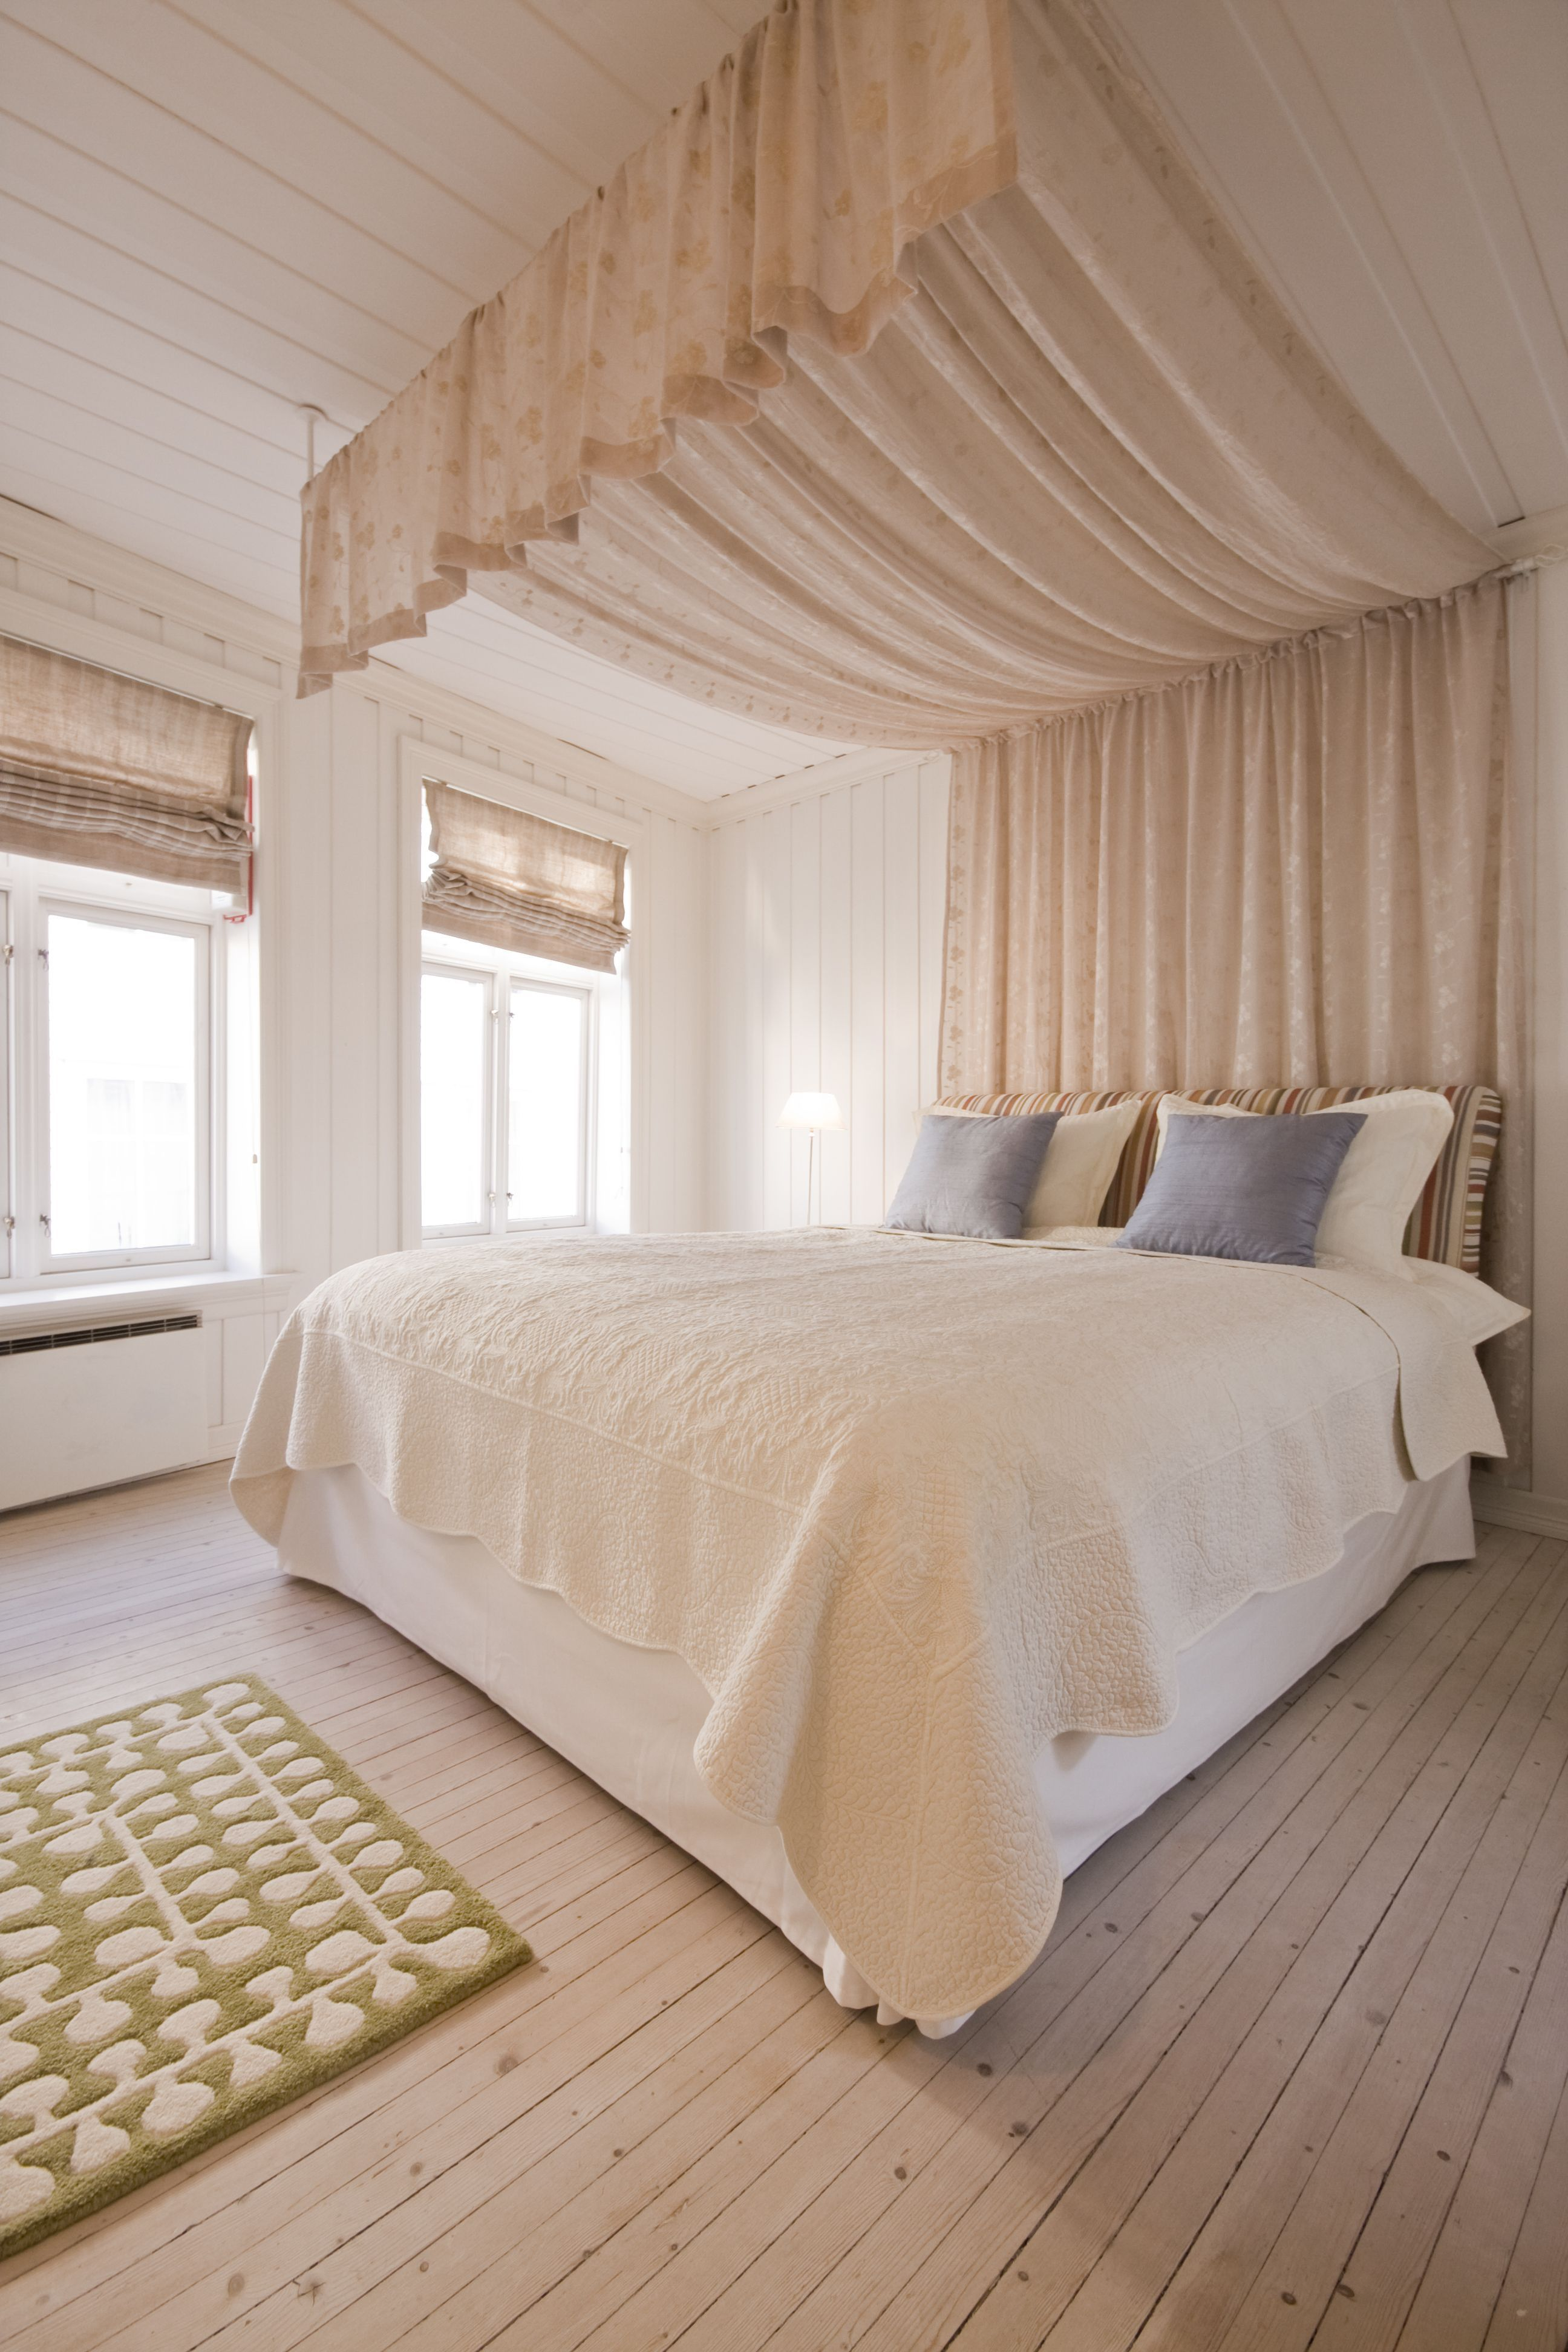 Canopy Bedroom Curtains: 31 Canopy Bed Ideas & Design For Your Bedroom